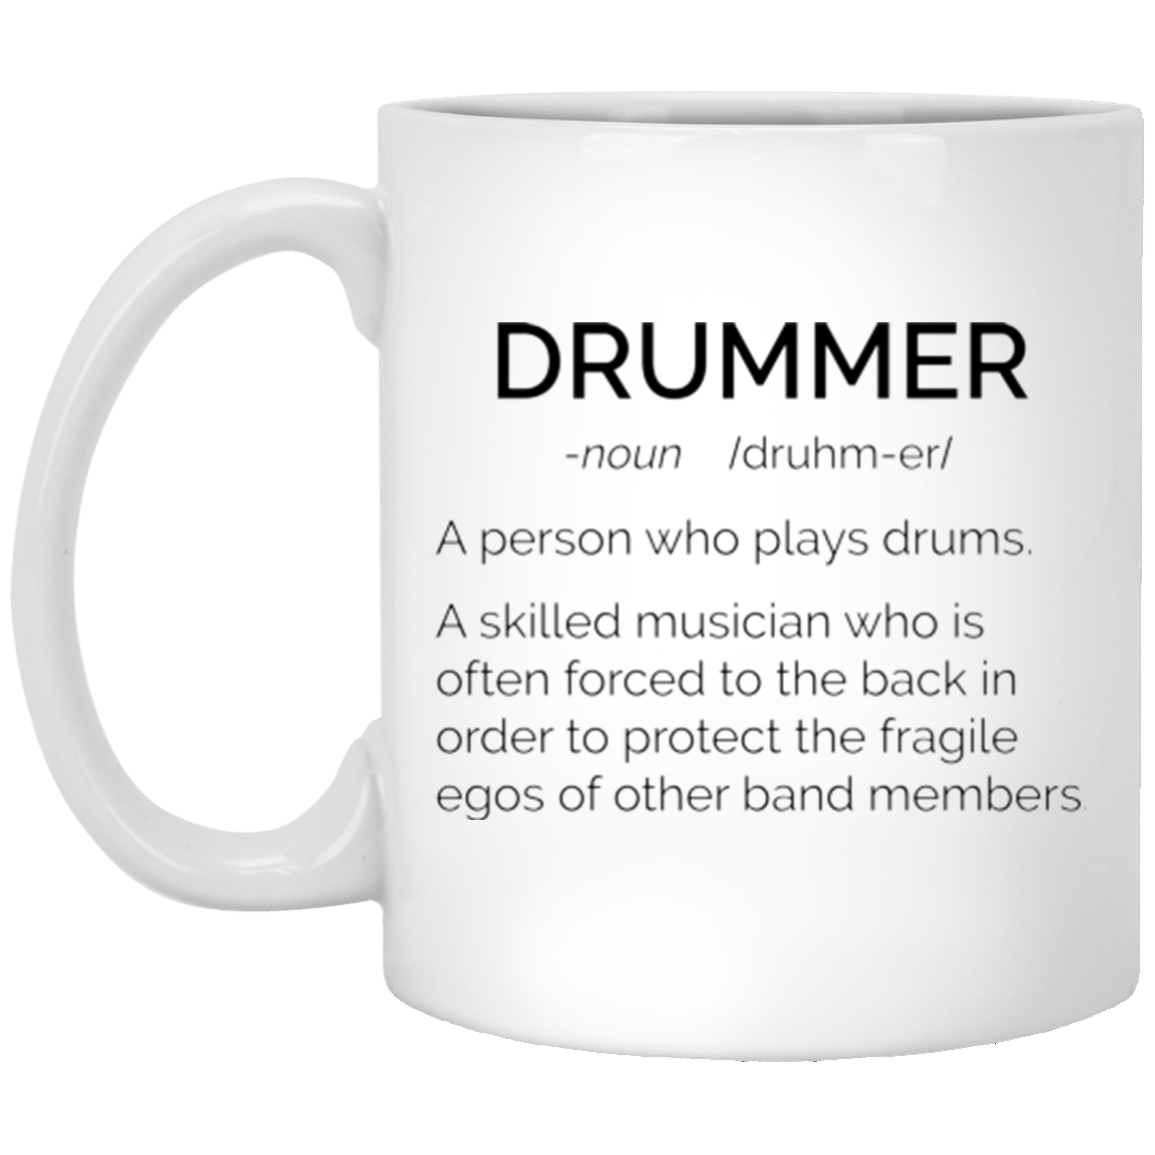 image 18 - Drummer Definition mug: Skilled musician always force to the back